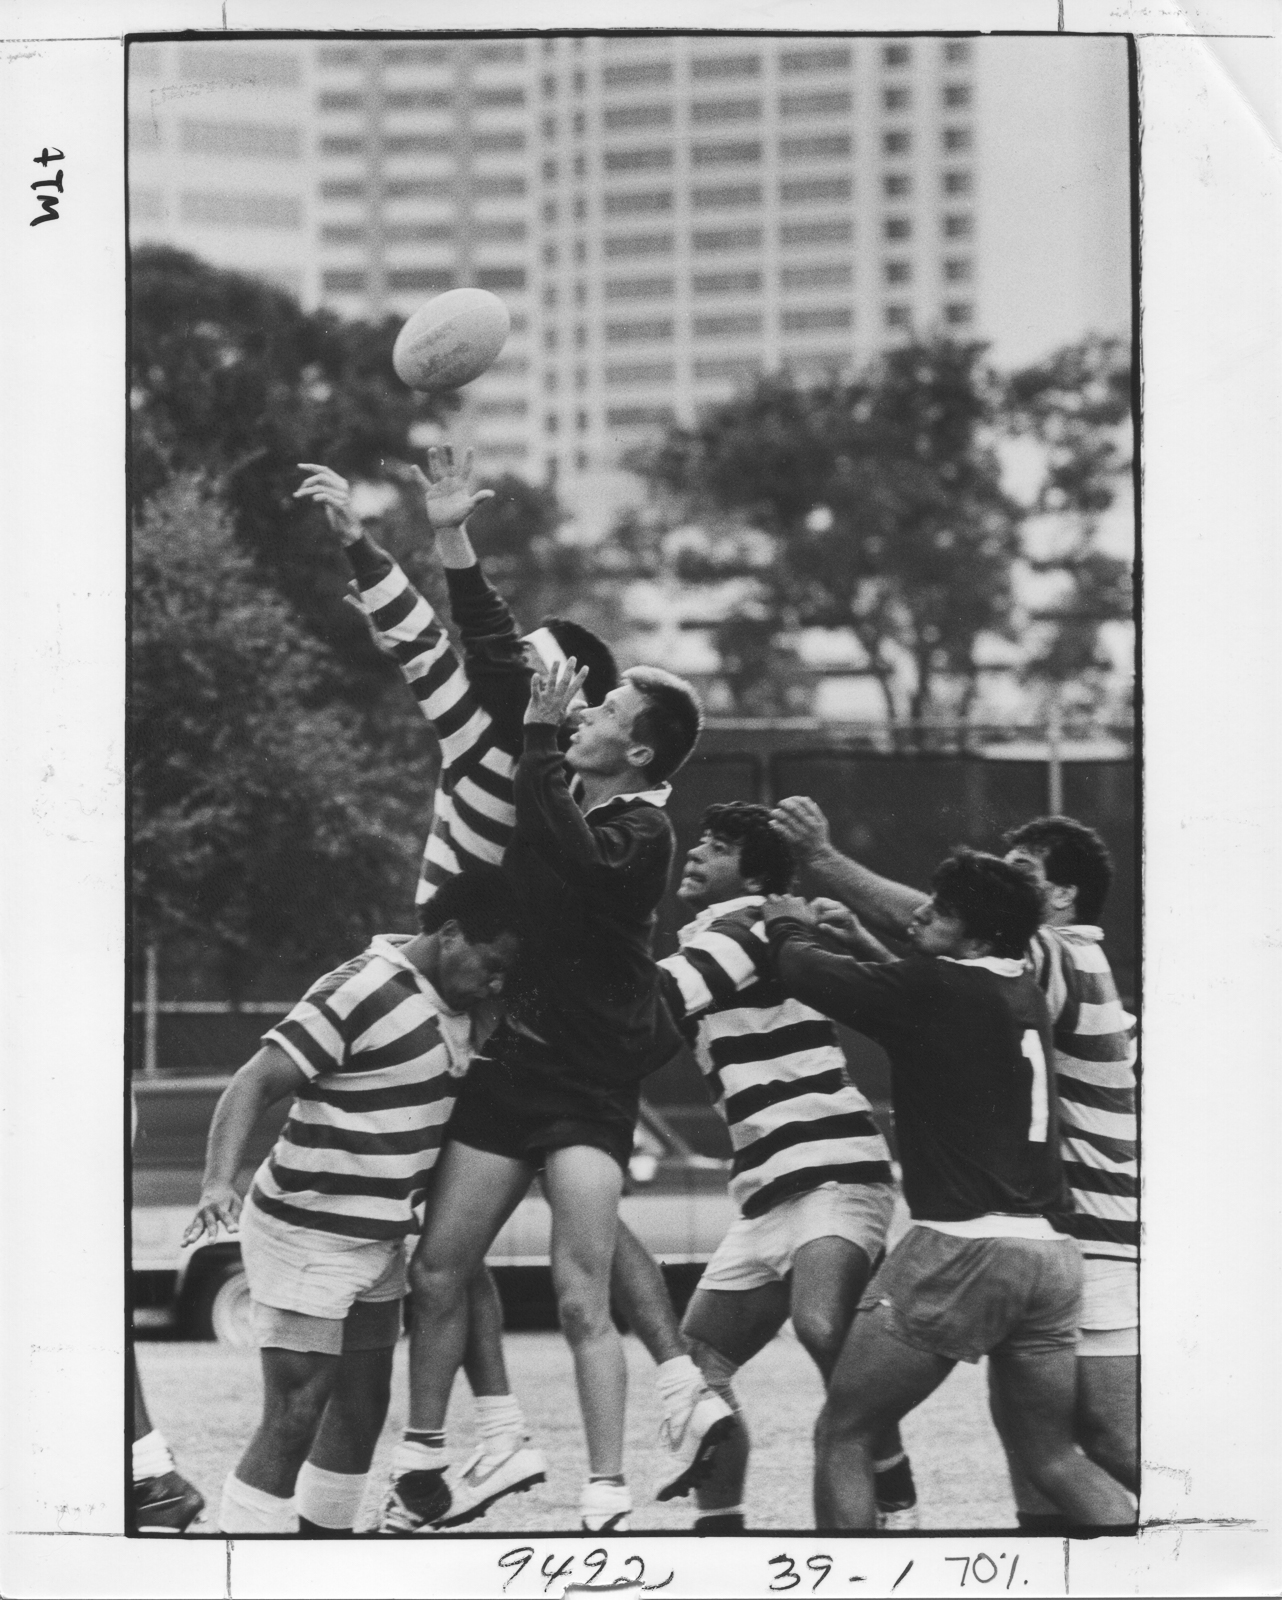 90.17 Sam Johnson - SJ 1990 Rice RFC (7 of 16).jpg